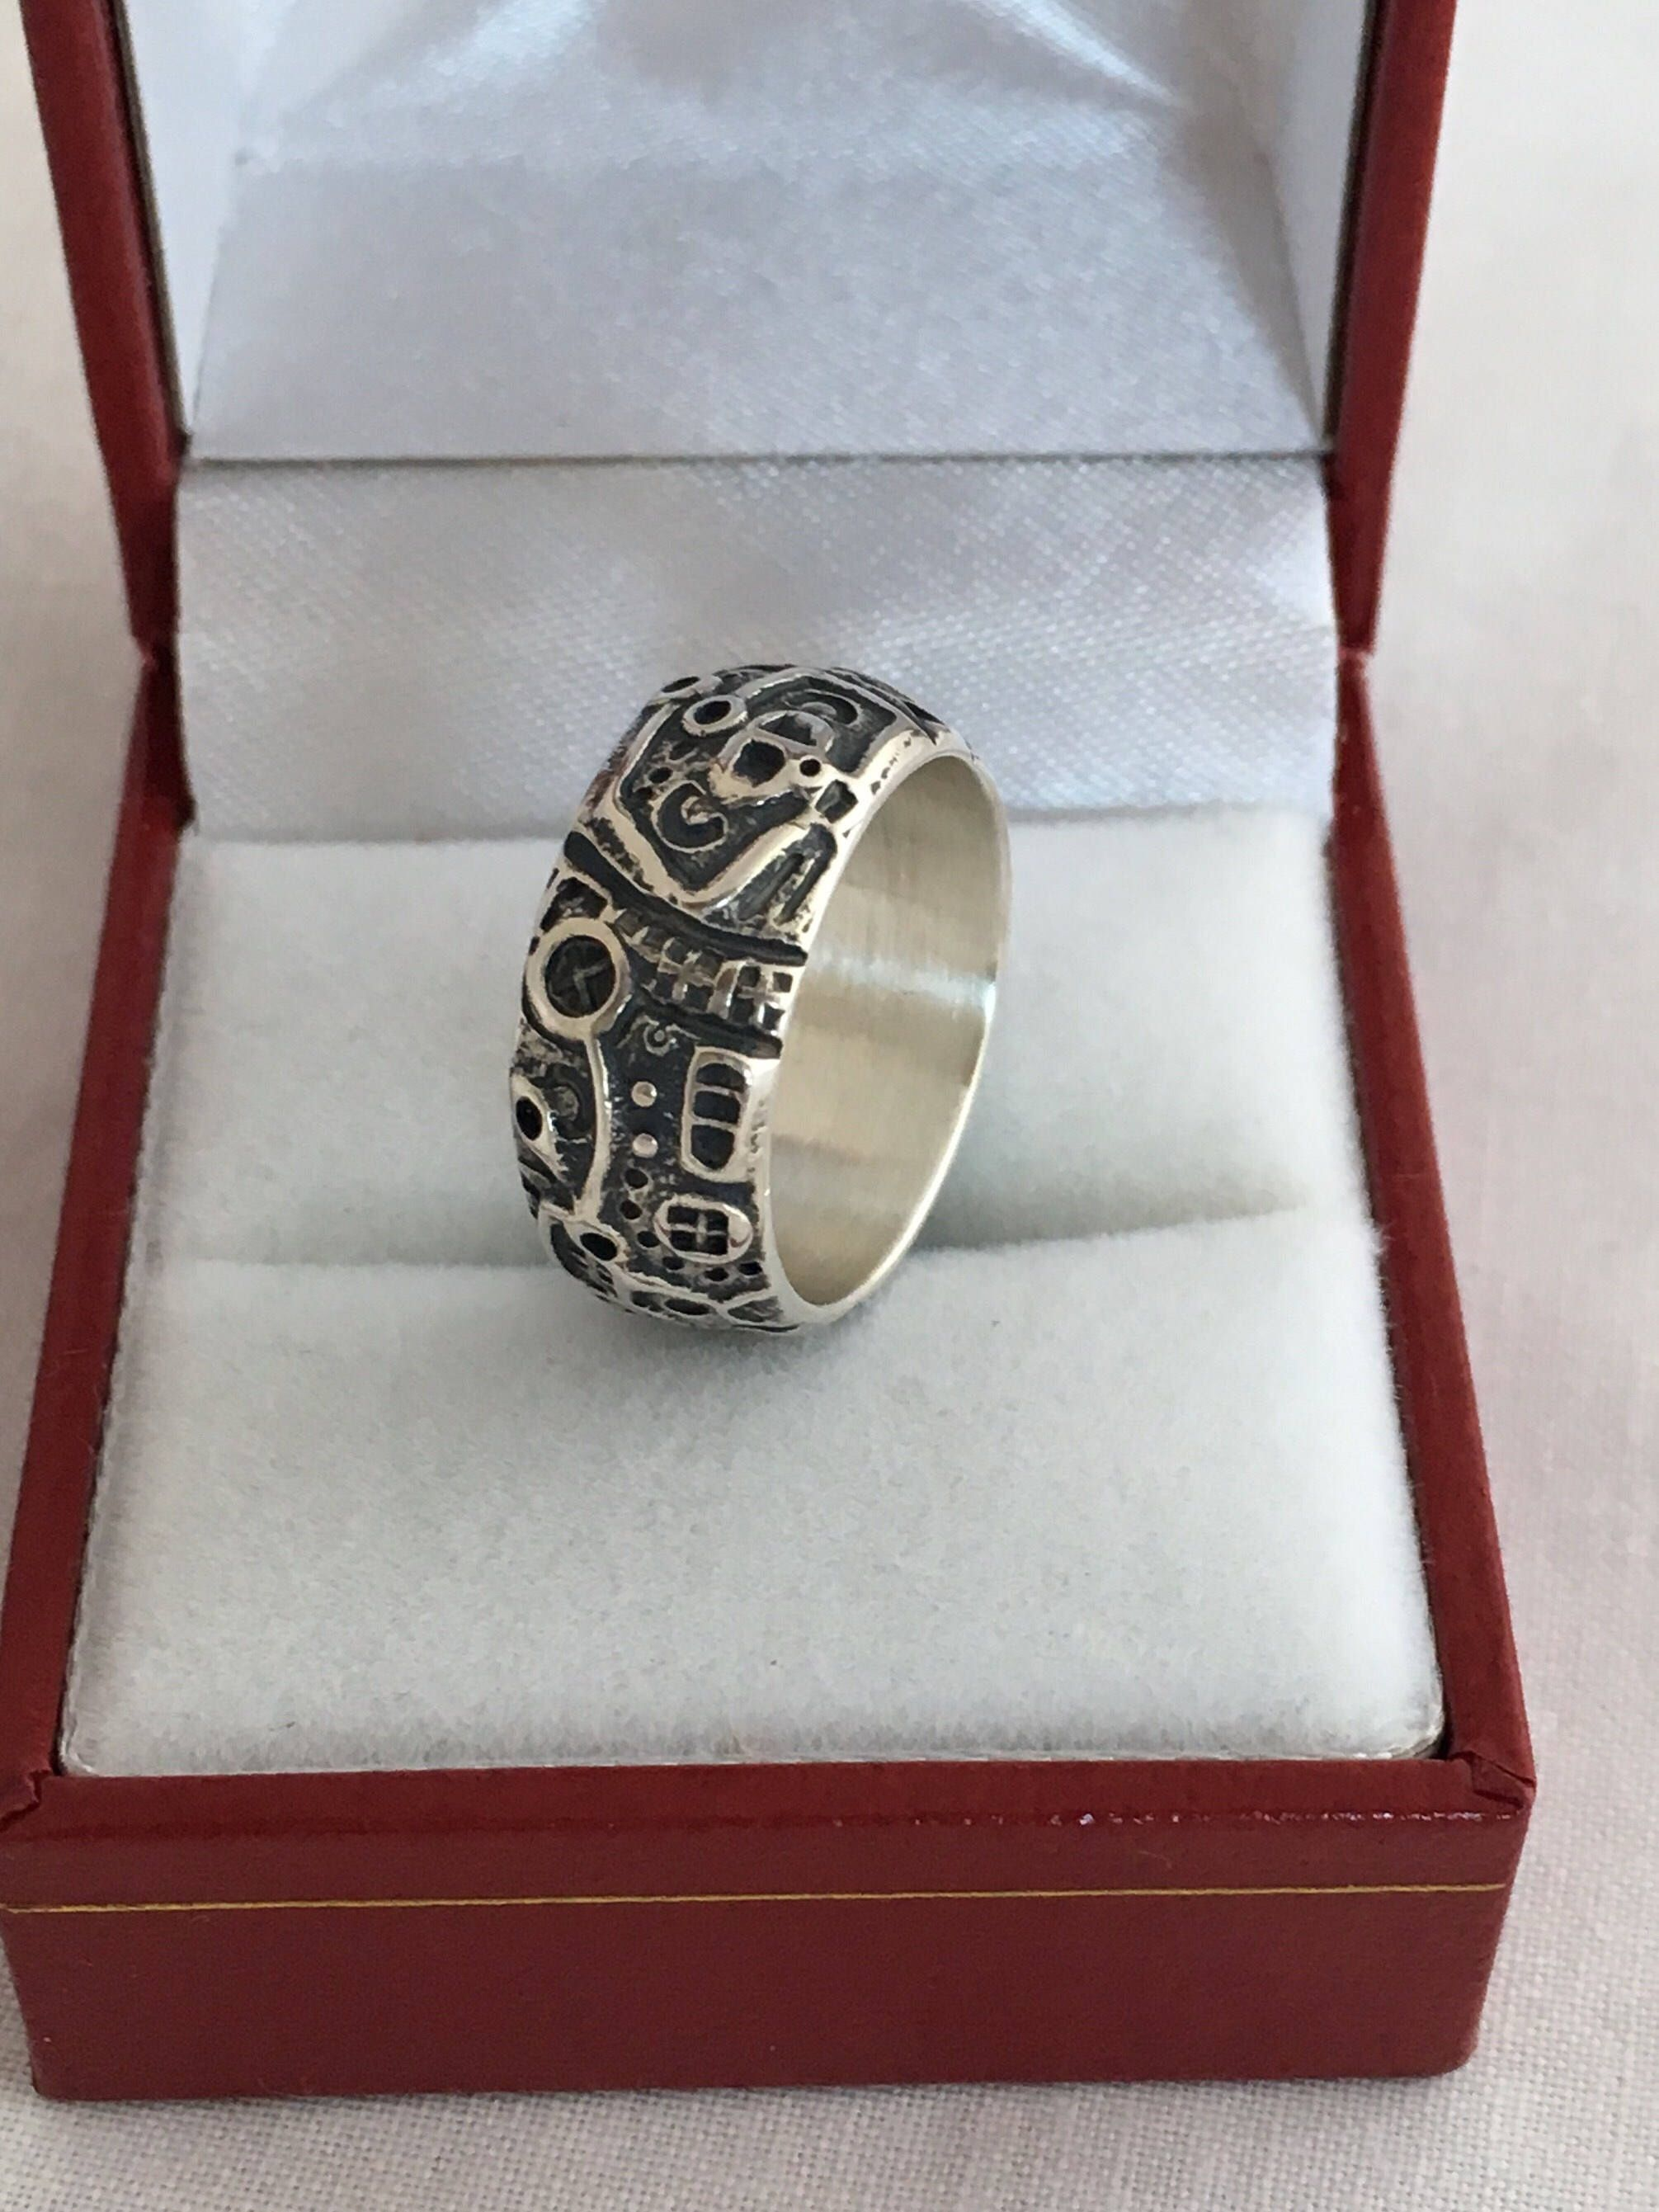 edf4b771a Excited to share the latest addition to my #etsy shop: Unique Storyteller  Sterling Silver 925 Ring Band Taille D Epergne Hallmark DLD Sterling Deeply  ...